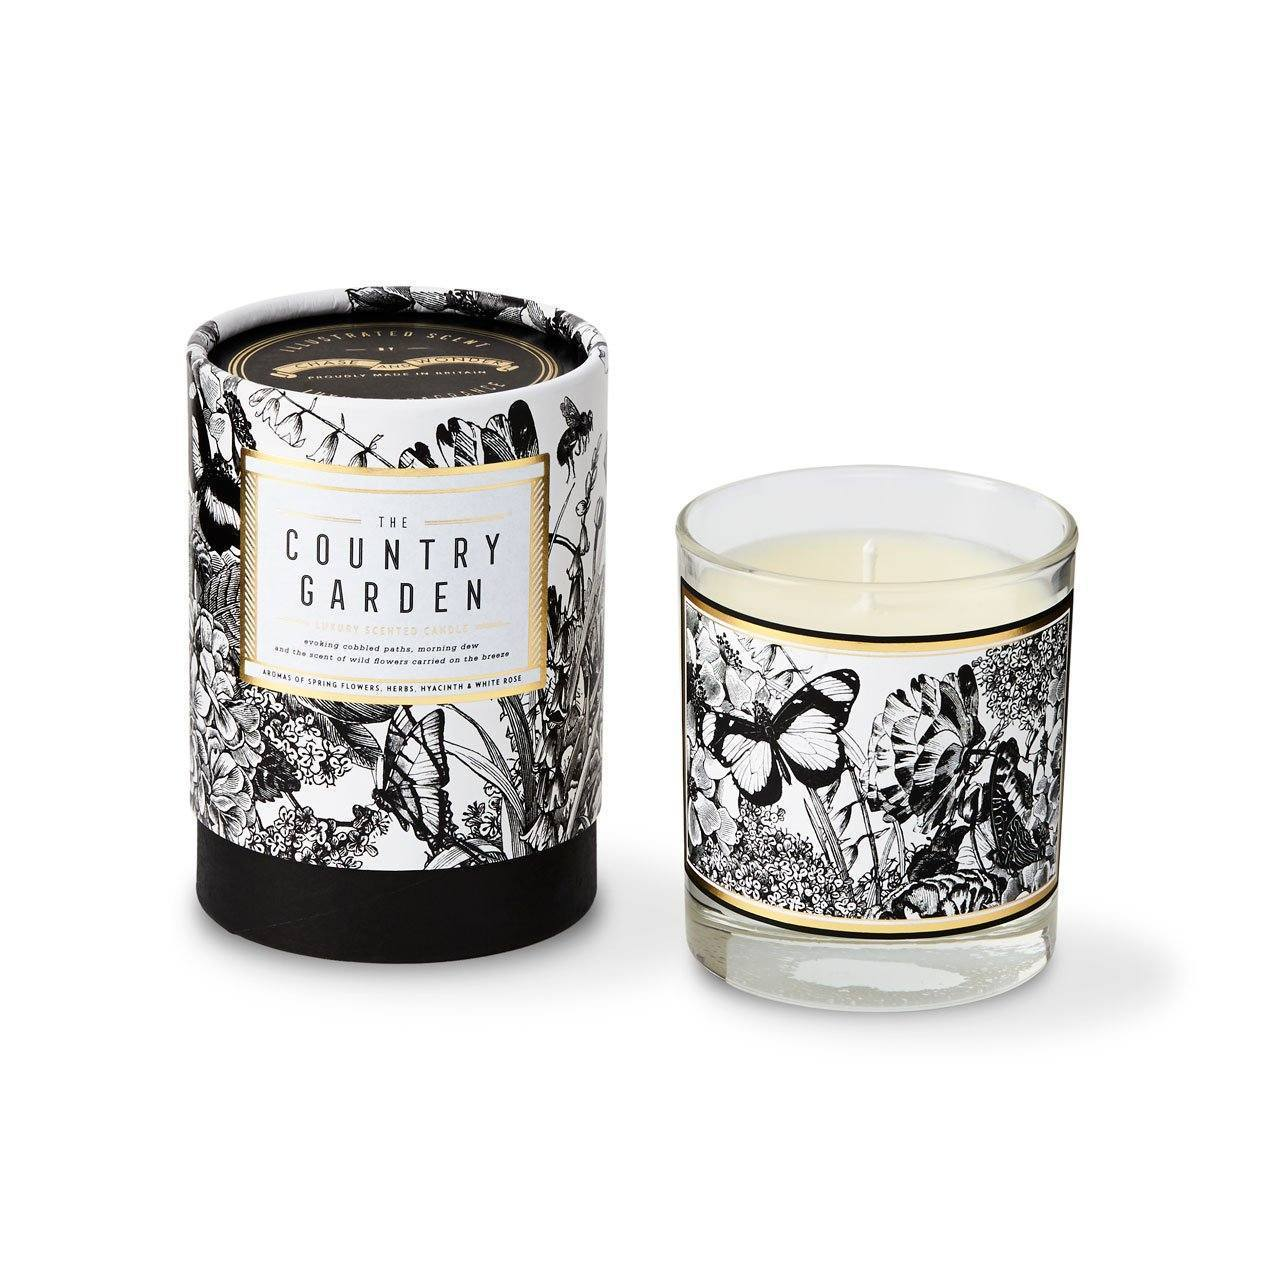 The Country Garden Luxury Scented Candle